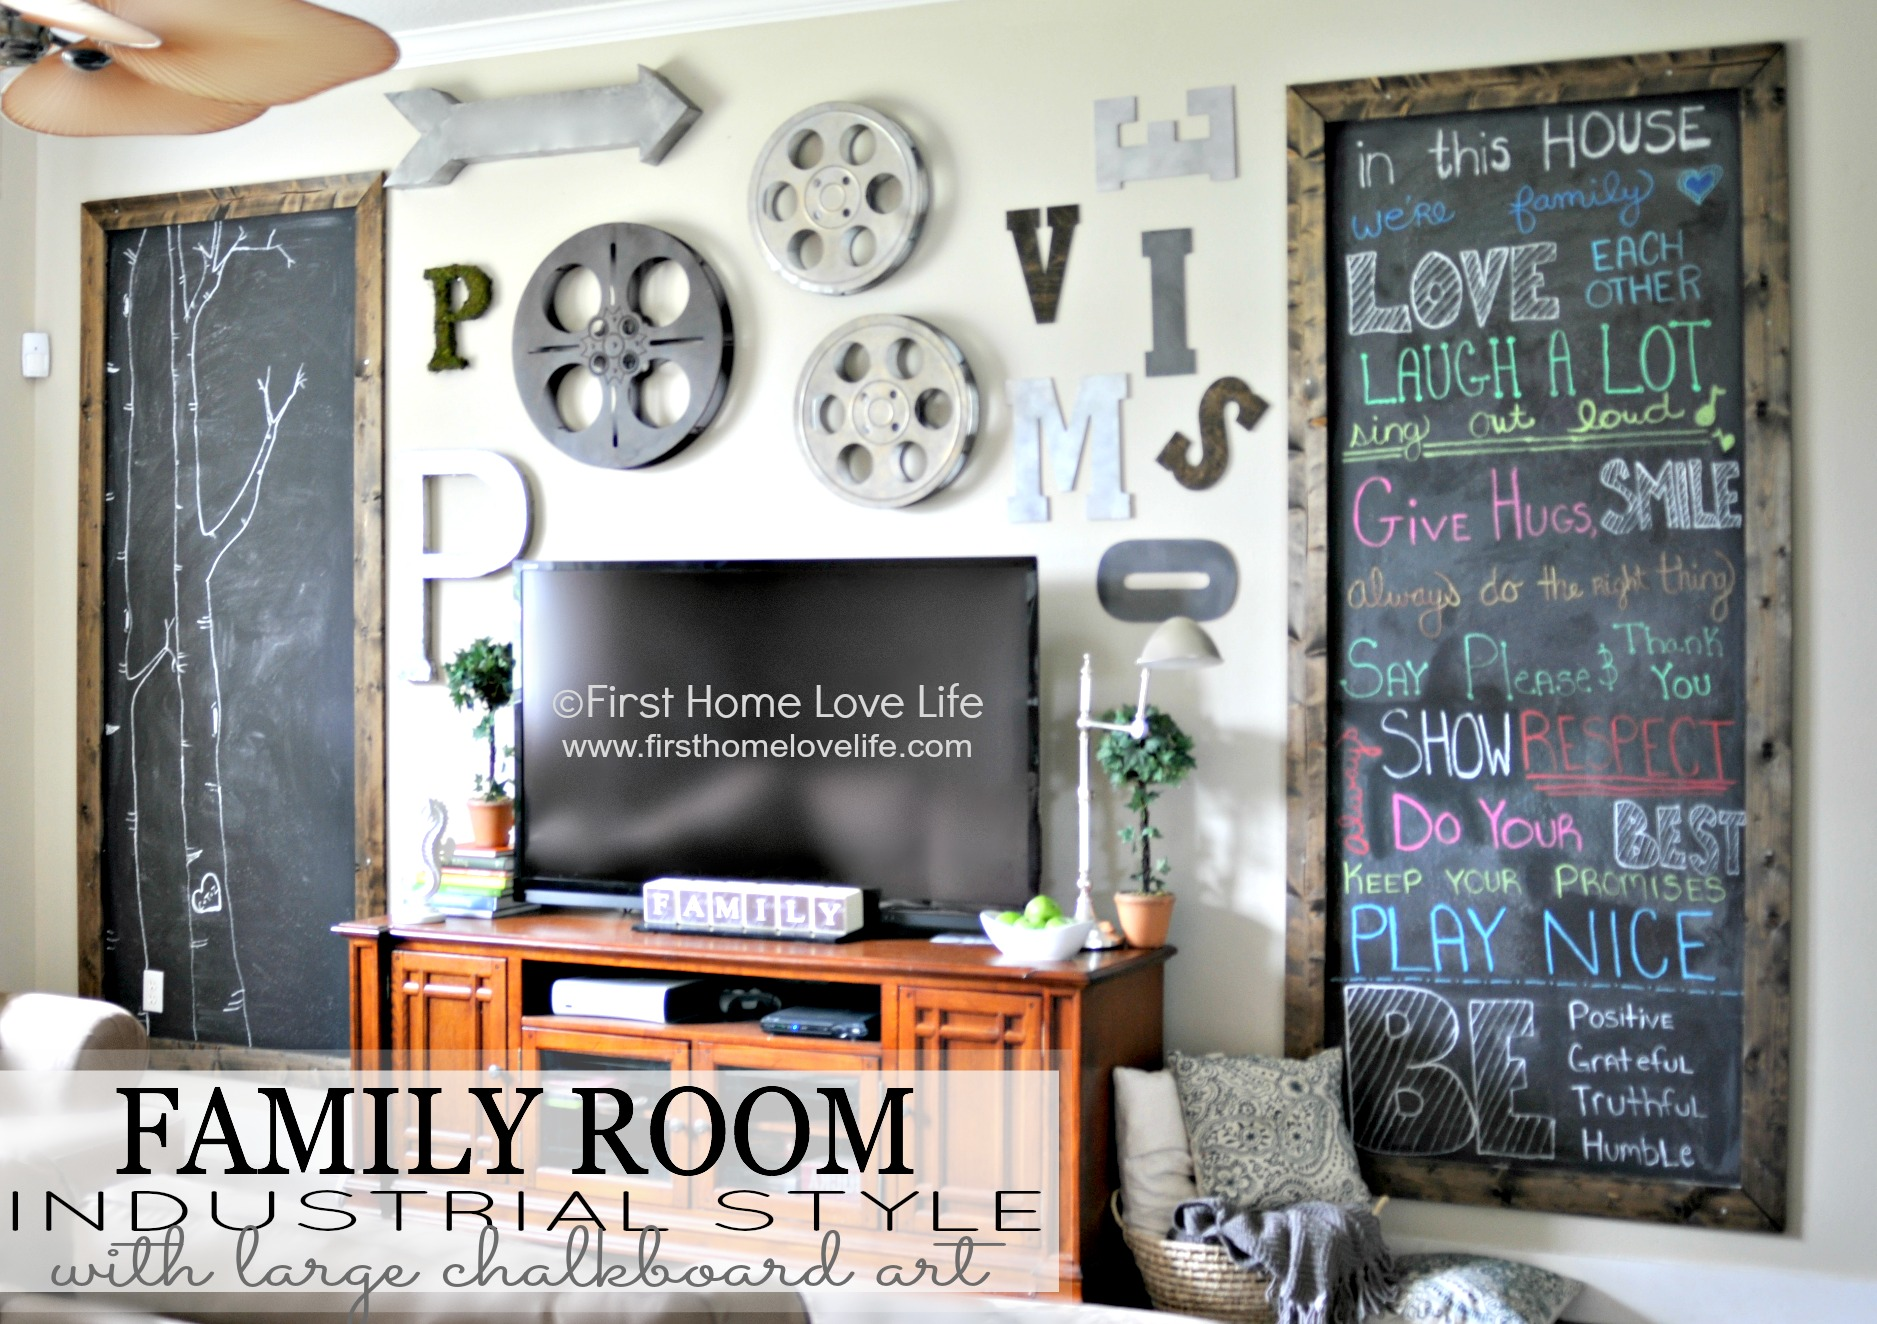 Ideas For Painting A Bedroom Industrial Style Family Room Gallery Wall With Chalkboard